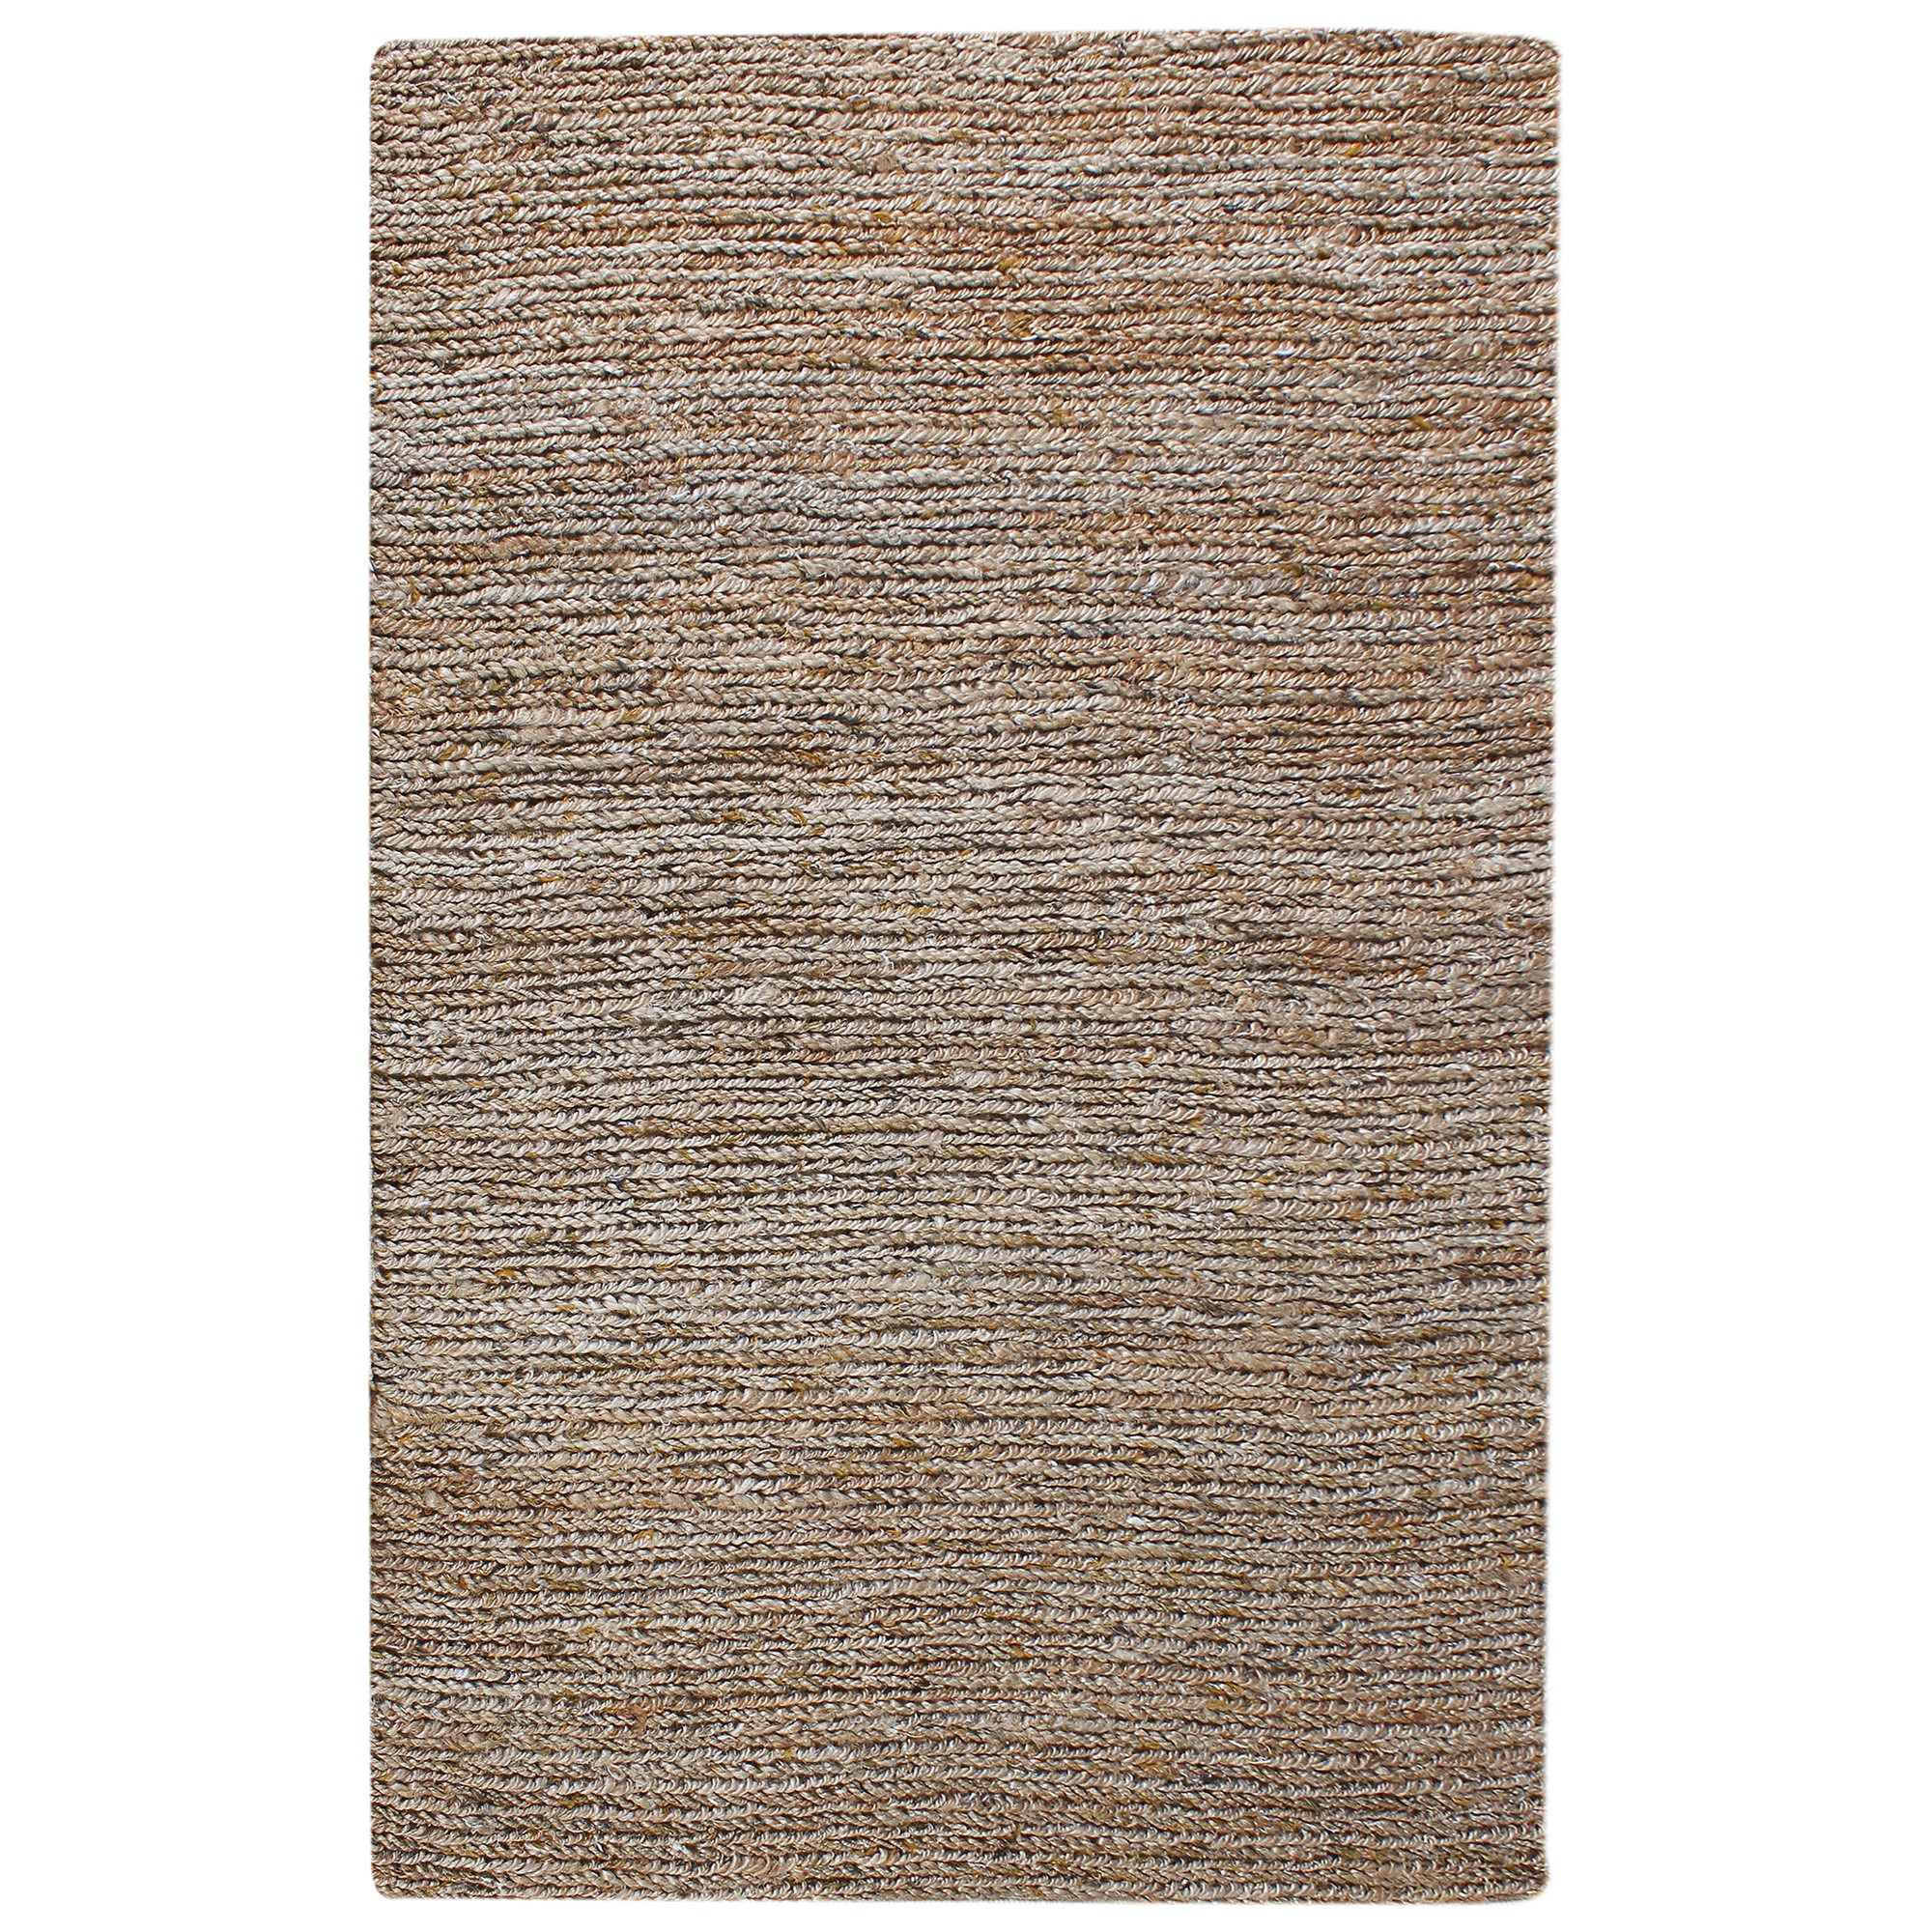 Parry Handwoven Textured Hemp & Wool Rug, 190x290cm